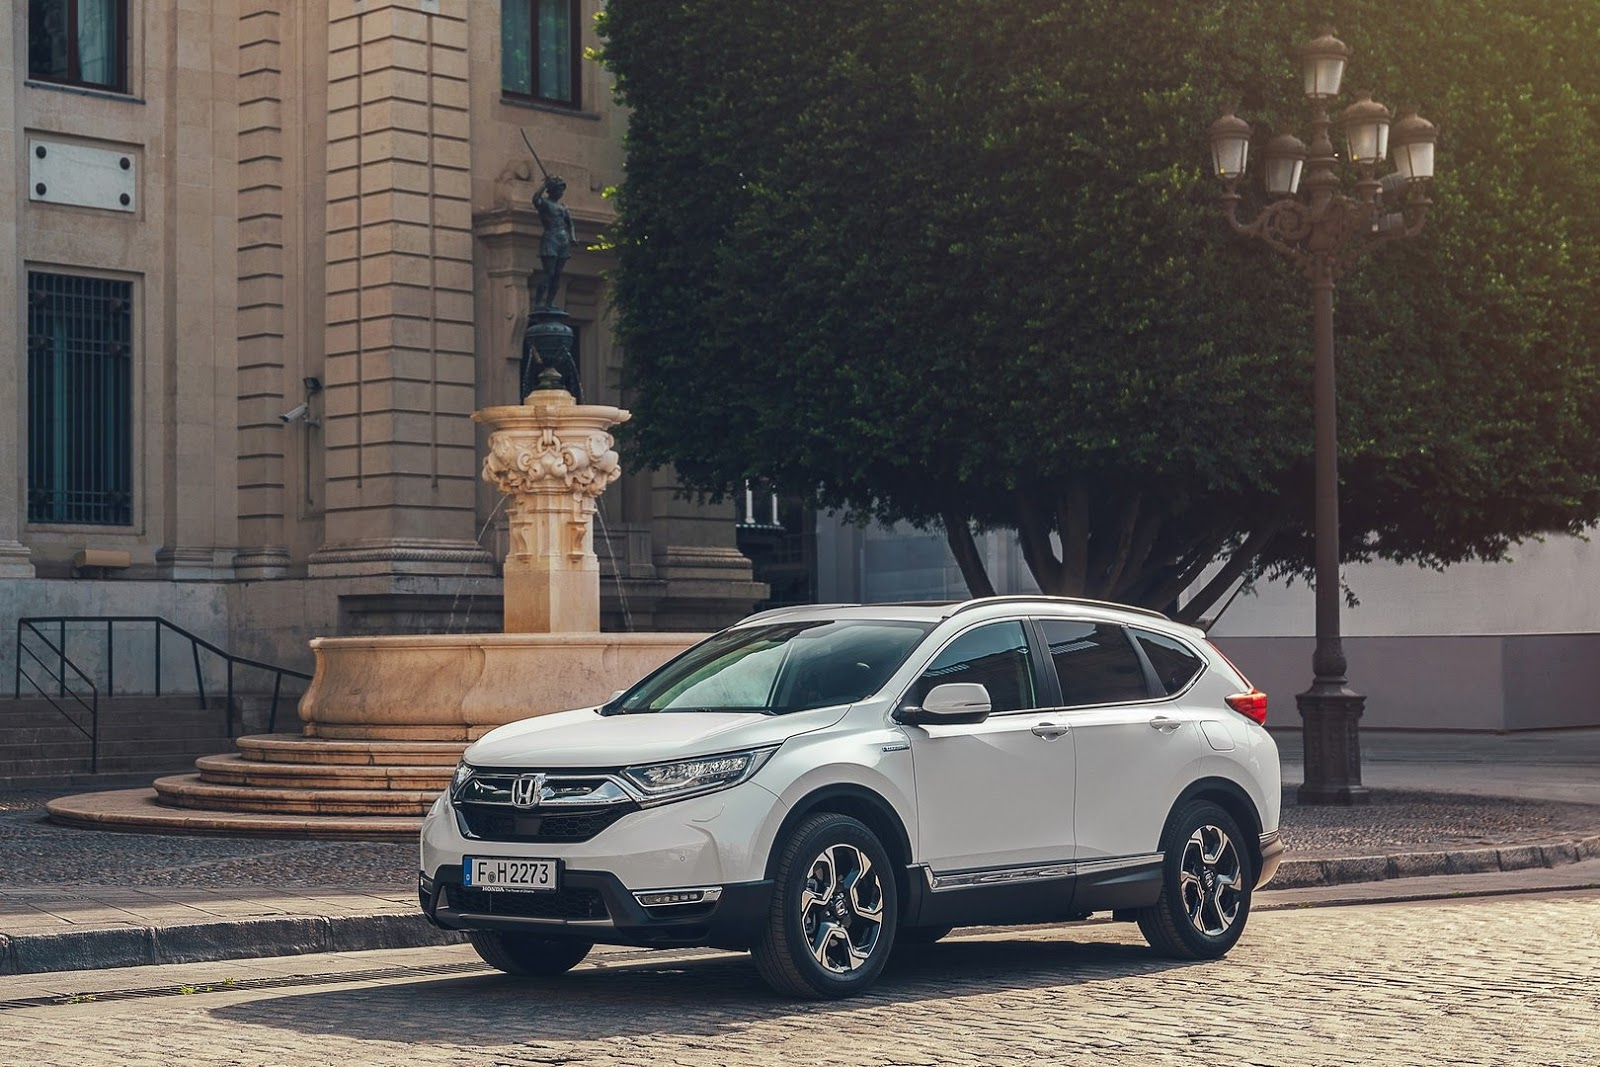 Honda Has Released More Details On The 2019 Cr V Hybrid Ahead Of Its 2018 Paris Auto Show Debut Including Fuel Economy Figures